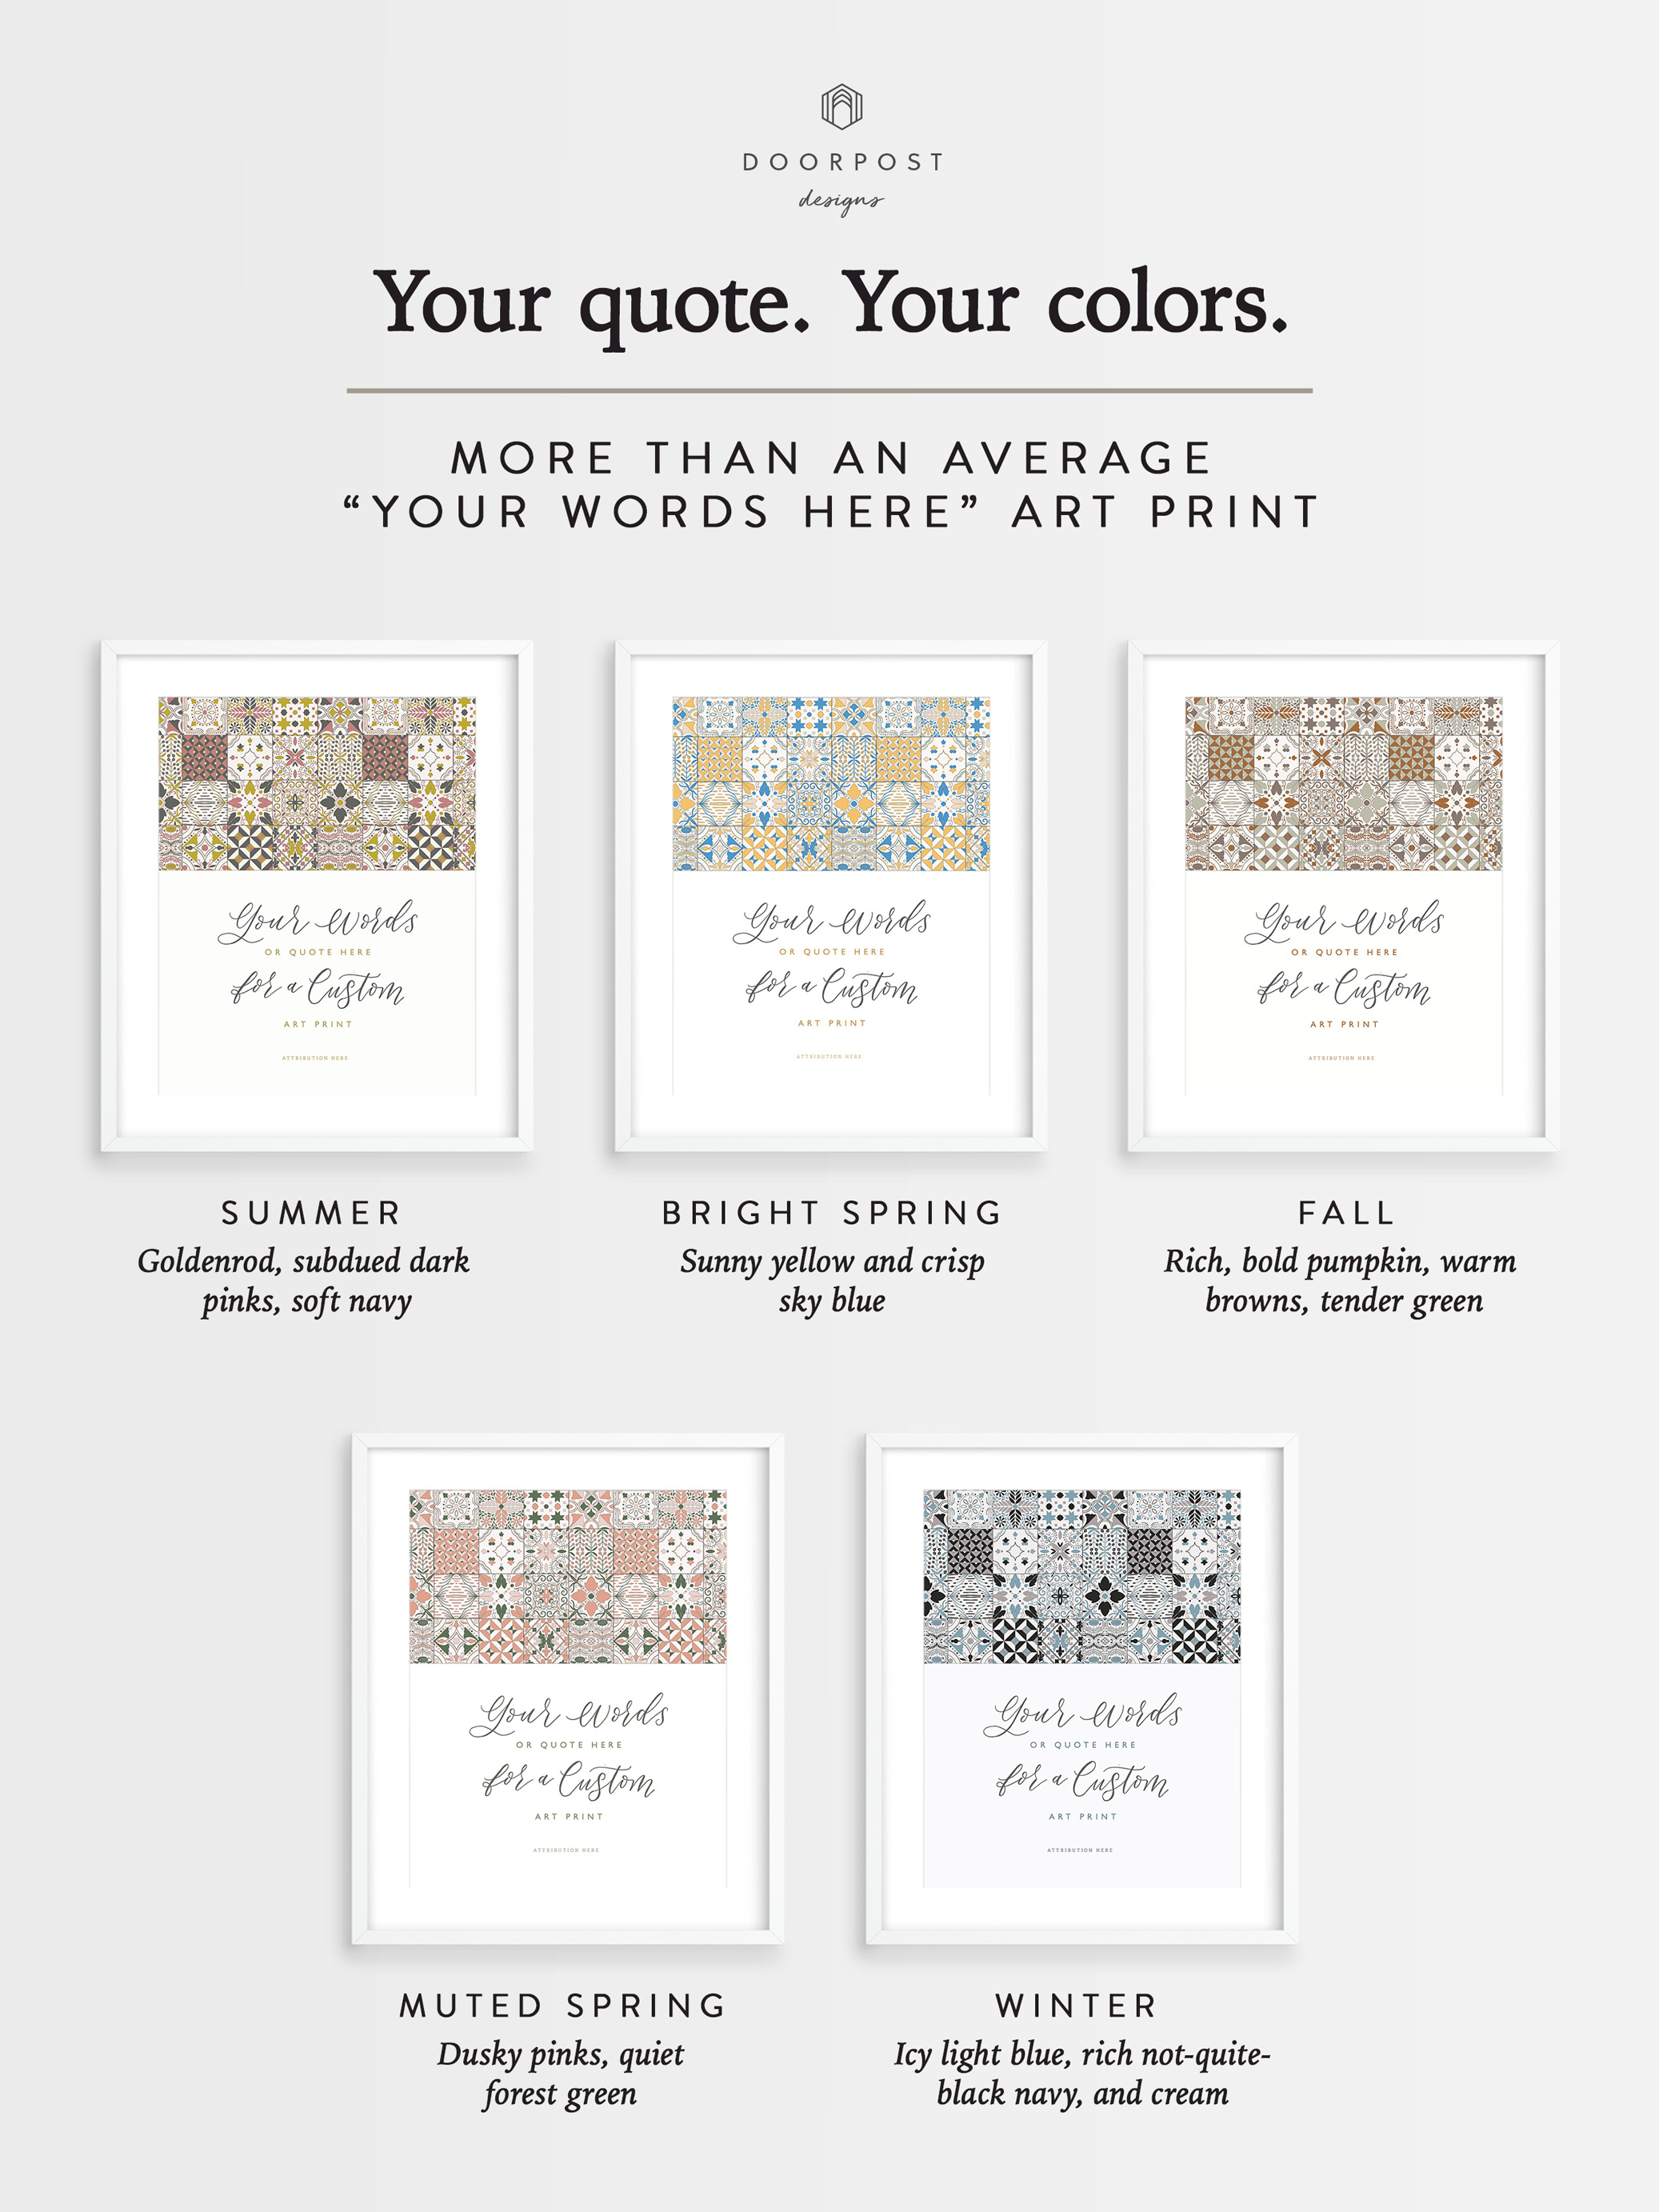 Your Quote. Your Colors. Semi-custom wall art.